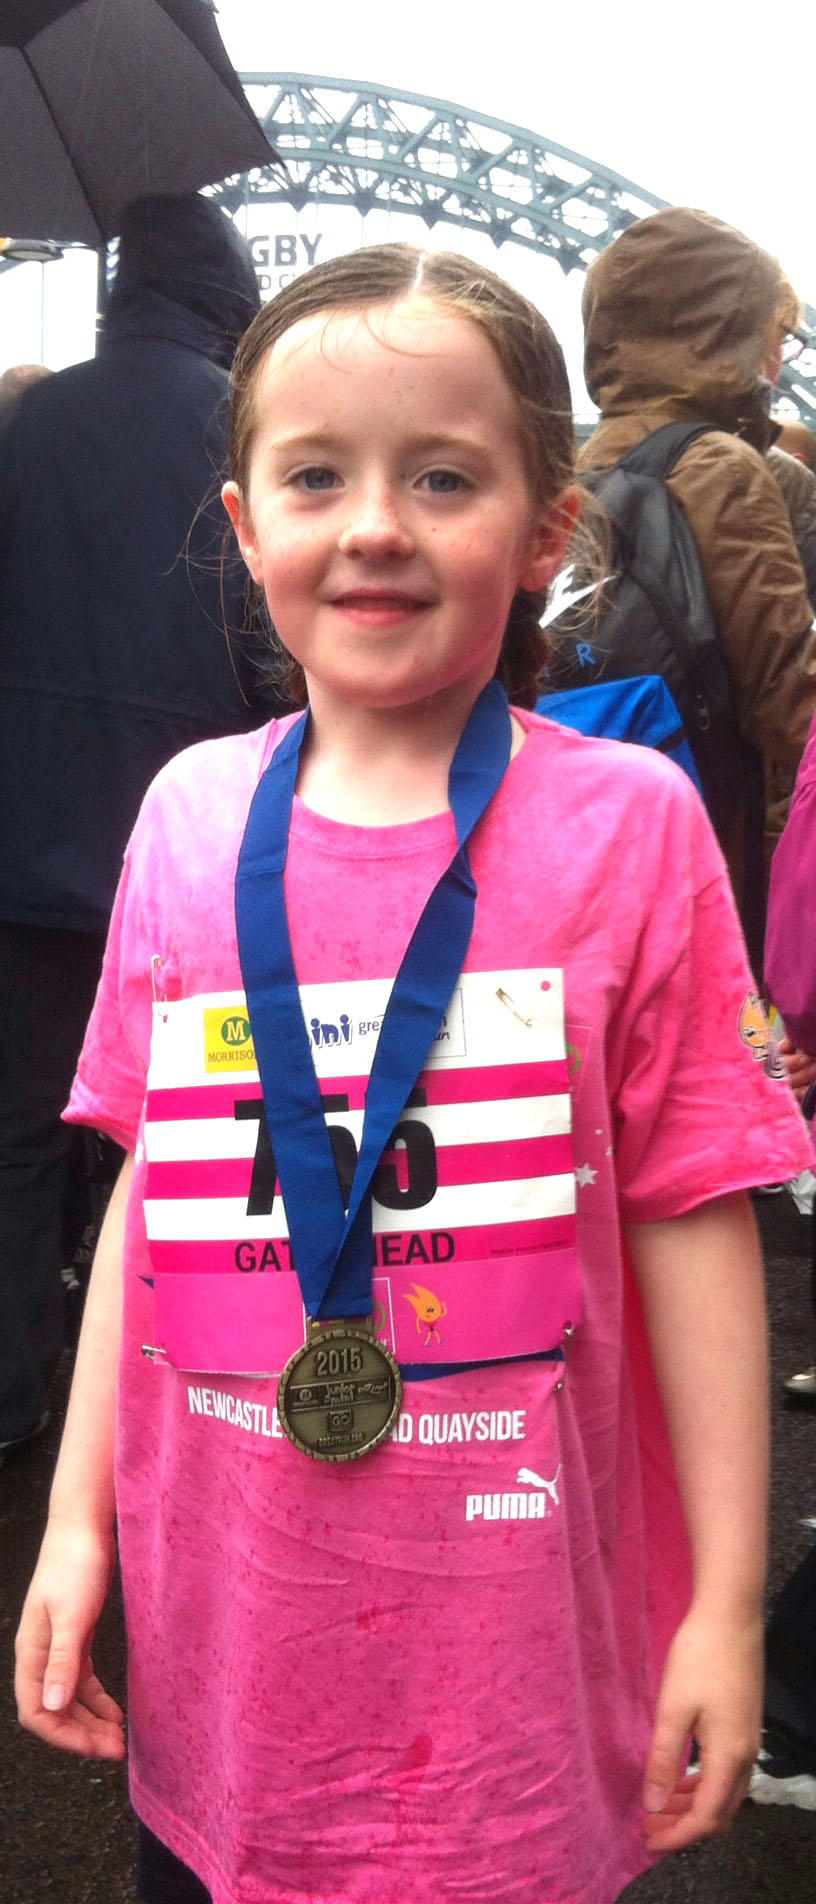 6 year old Aycliffe Girl Completes Mini Great North Run